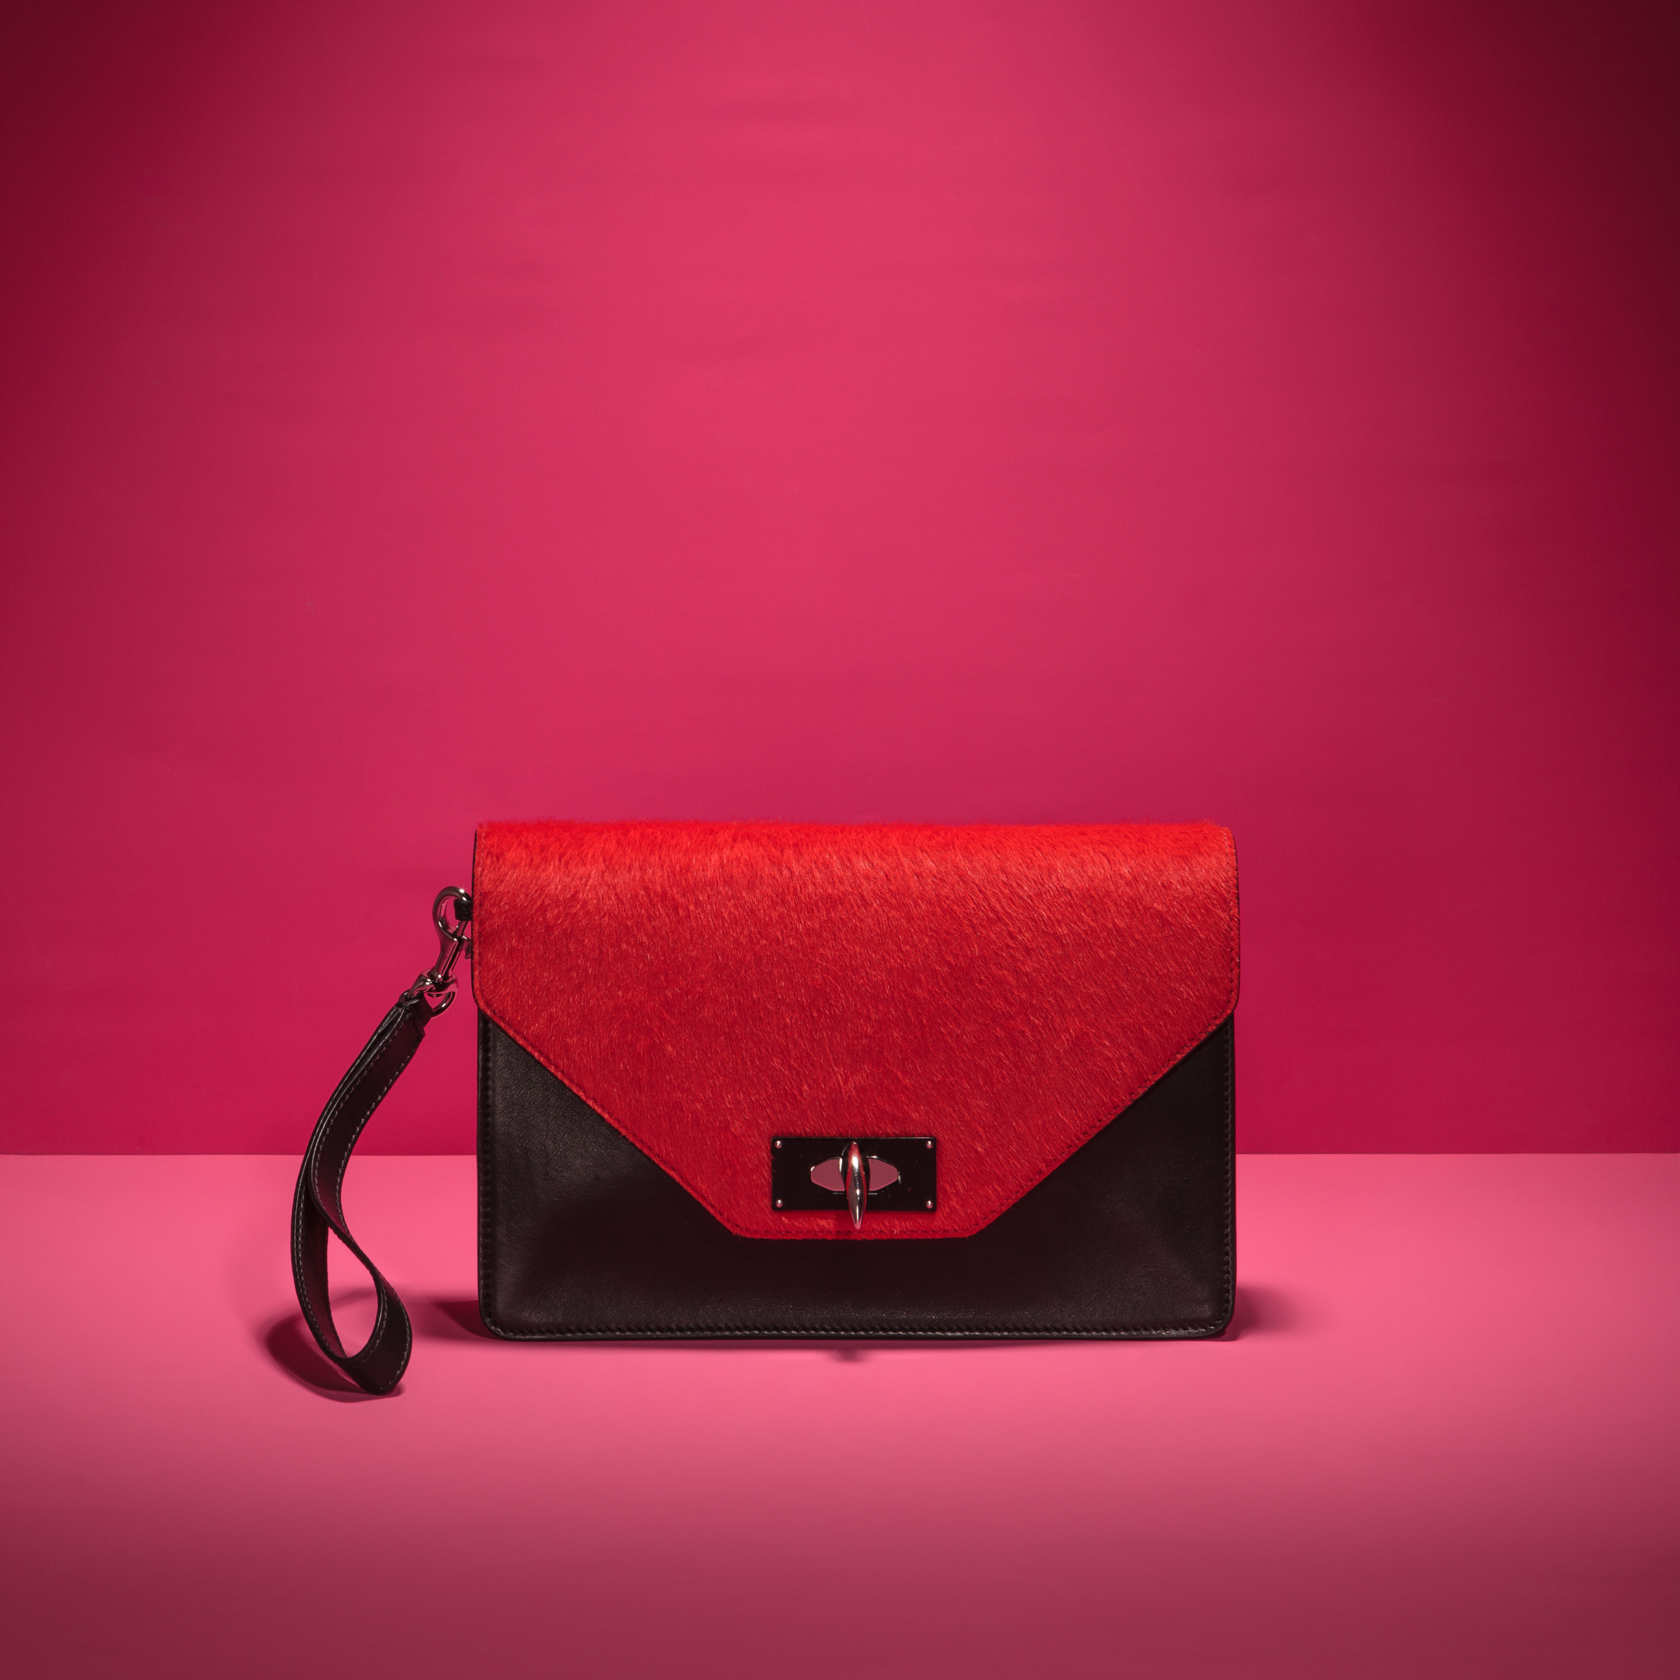 be1bf2d76e44 Fall Bag Guide Givenchy by Riccardo Tisci red pony hair and black leather  shark tooth clutch